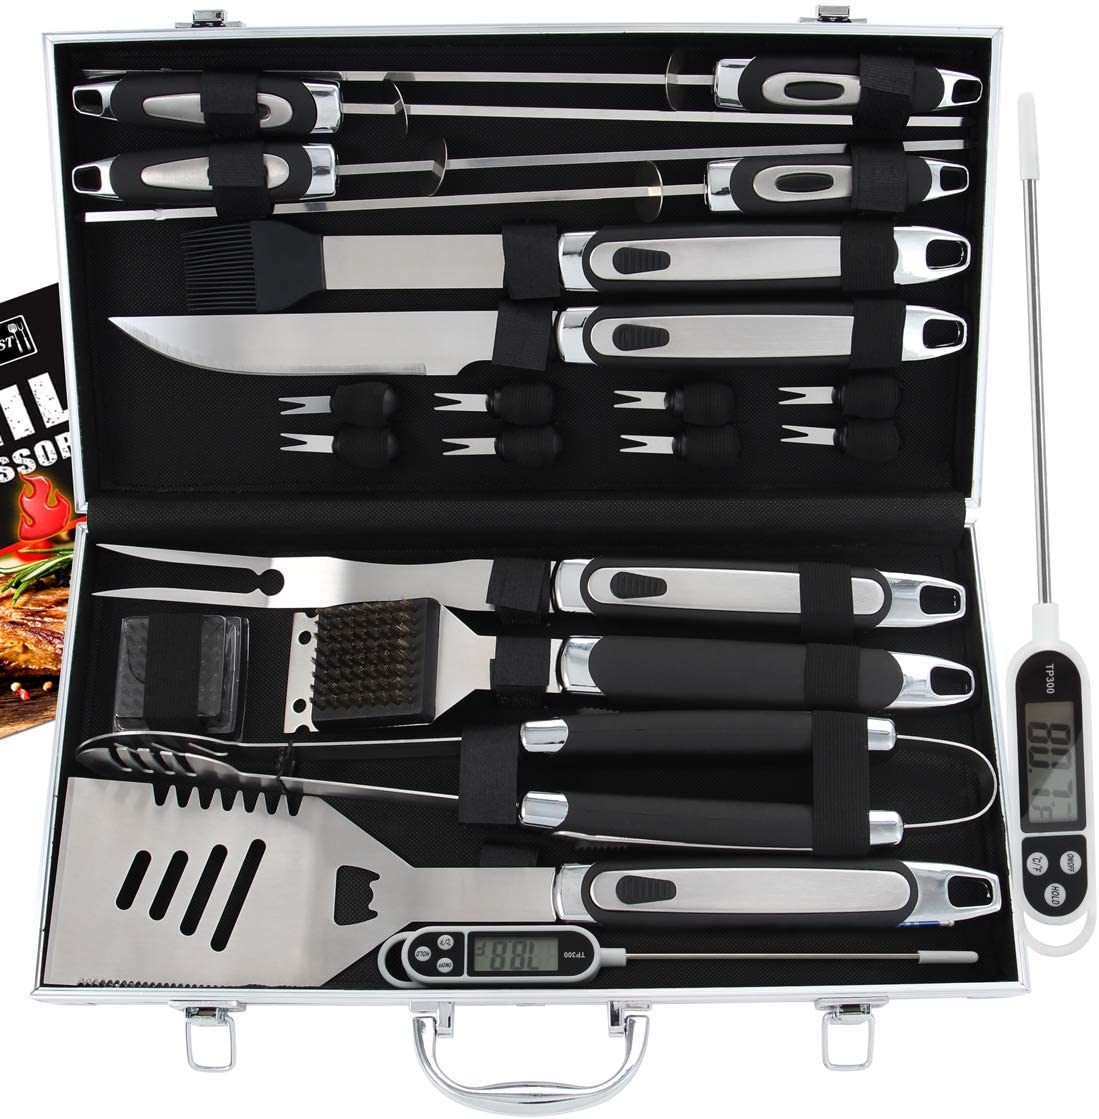 Best Grilling Accessoriesfor the Experts: Romanticist 21pc BBQ Grill Accessories